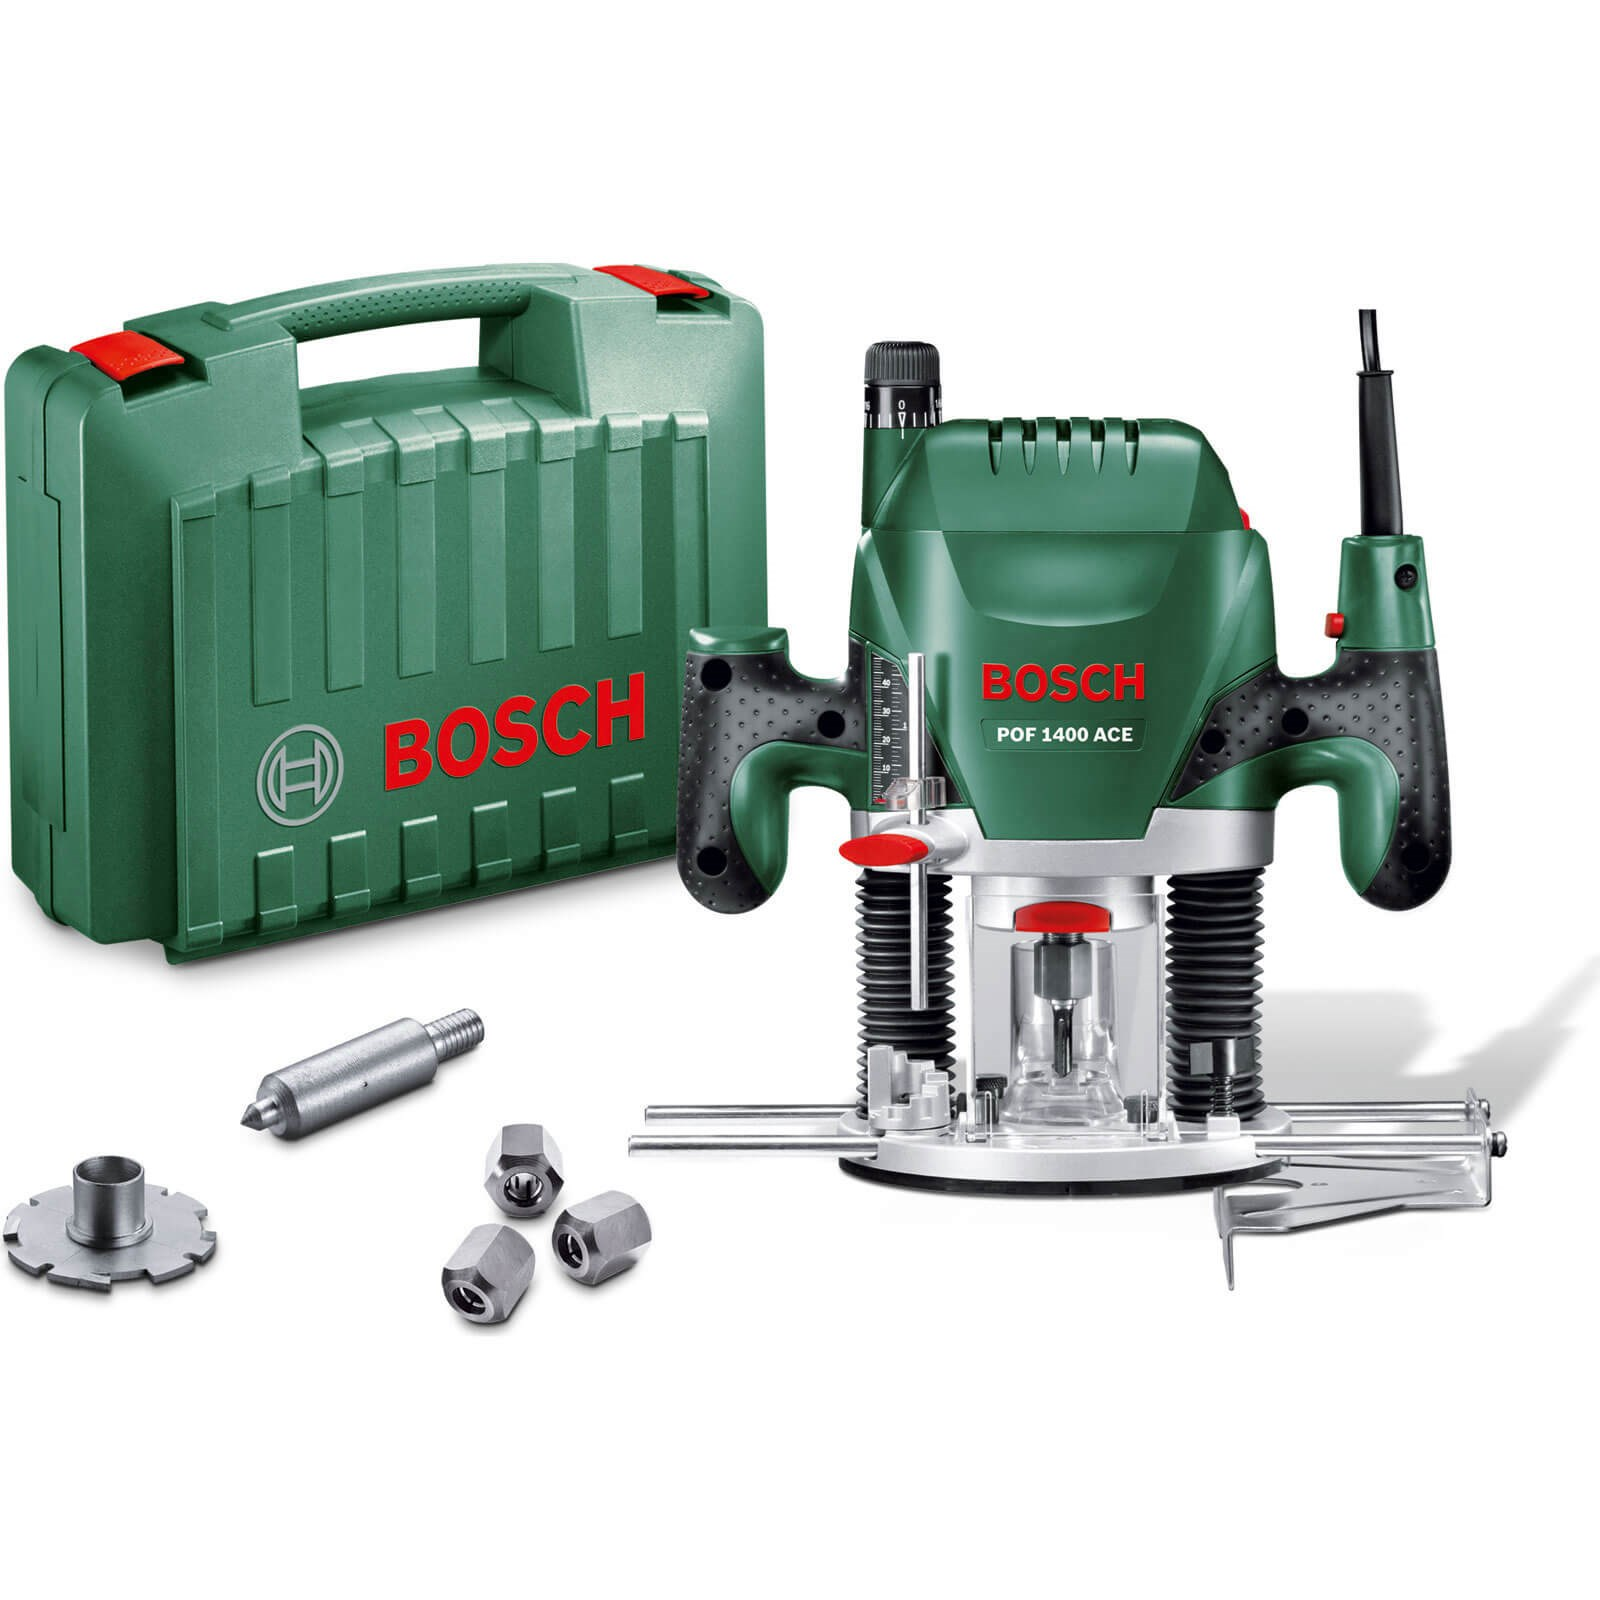 Bosch pof 1400ace 14 plunge router greentooth Images